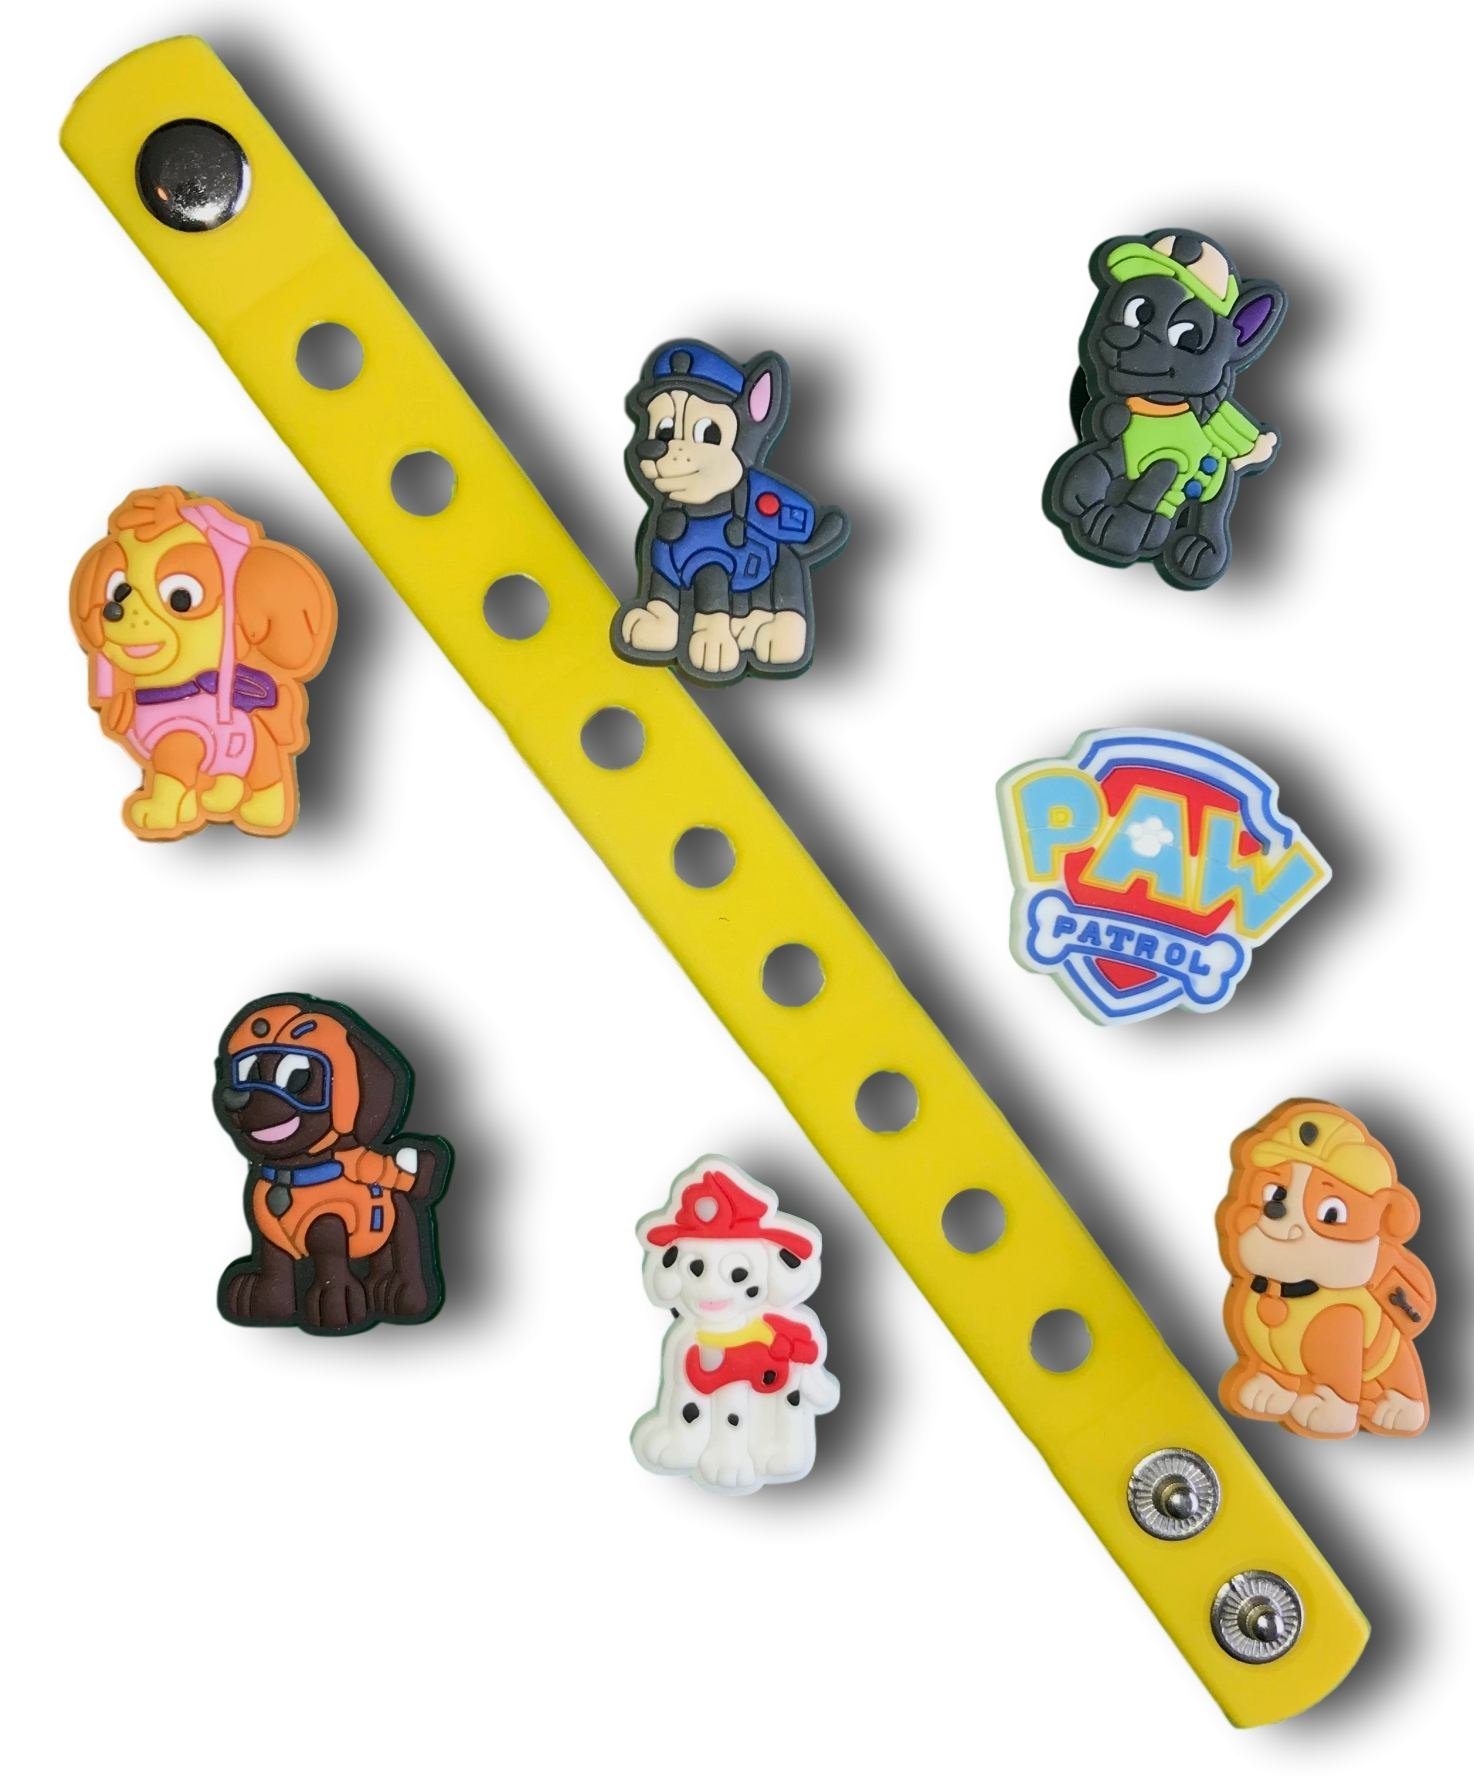 Jibbitz for Crocs Shoes by Nenistore| Cute Shoe Charms Plug Accessories for Crocs & Bracelet Wristband Party Gifts| Paw Patrol (7pcs) FREE 01 Silicone Wristband 7 Inches